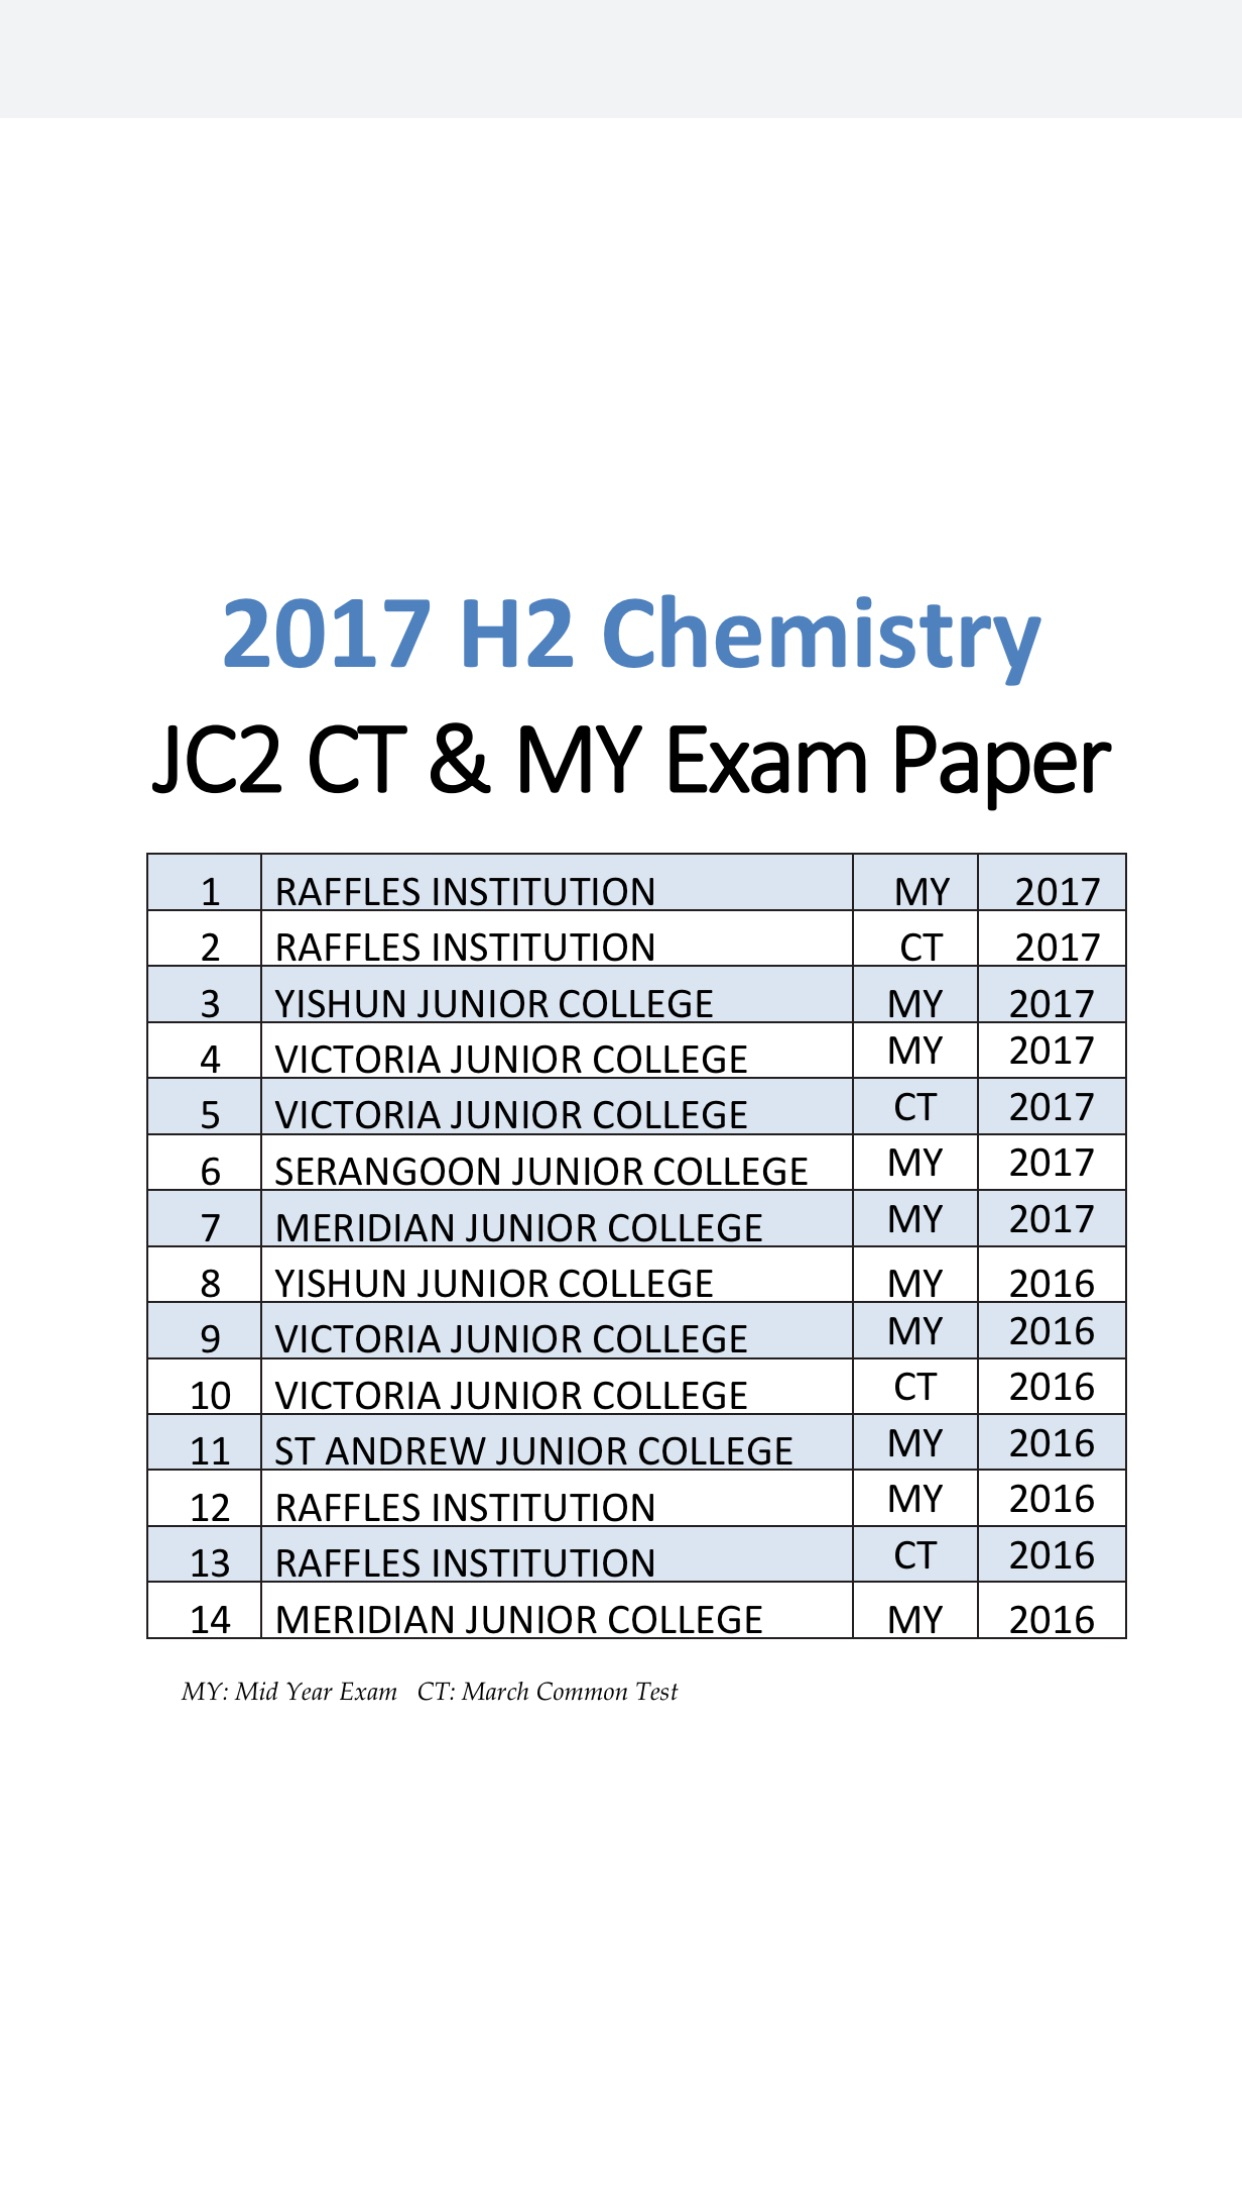 2017 A Level JC2 H2 Chemistry Common Test and Mid Year Exam Papers (soft  copy)